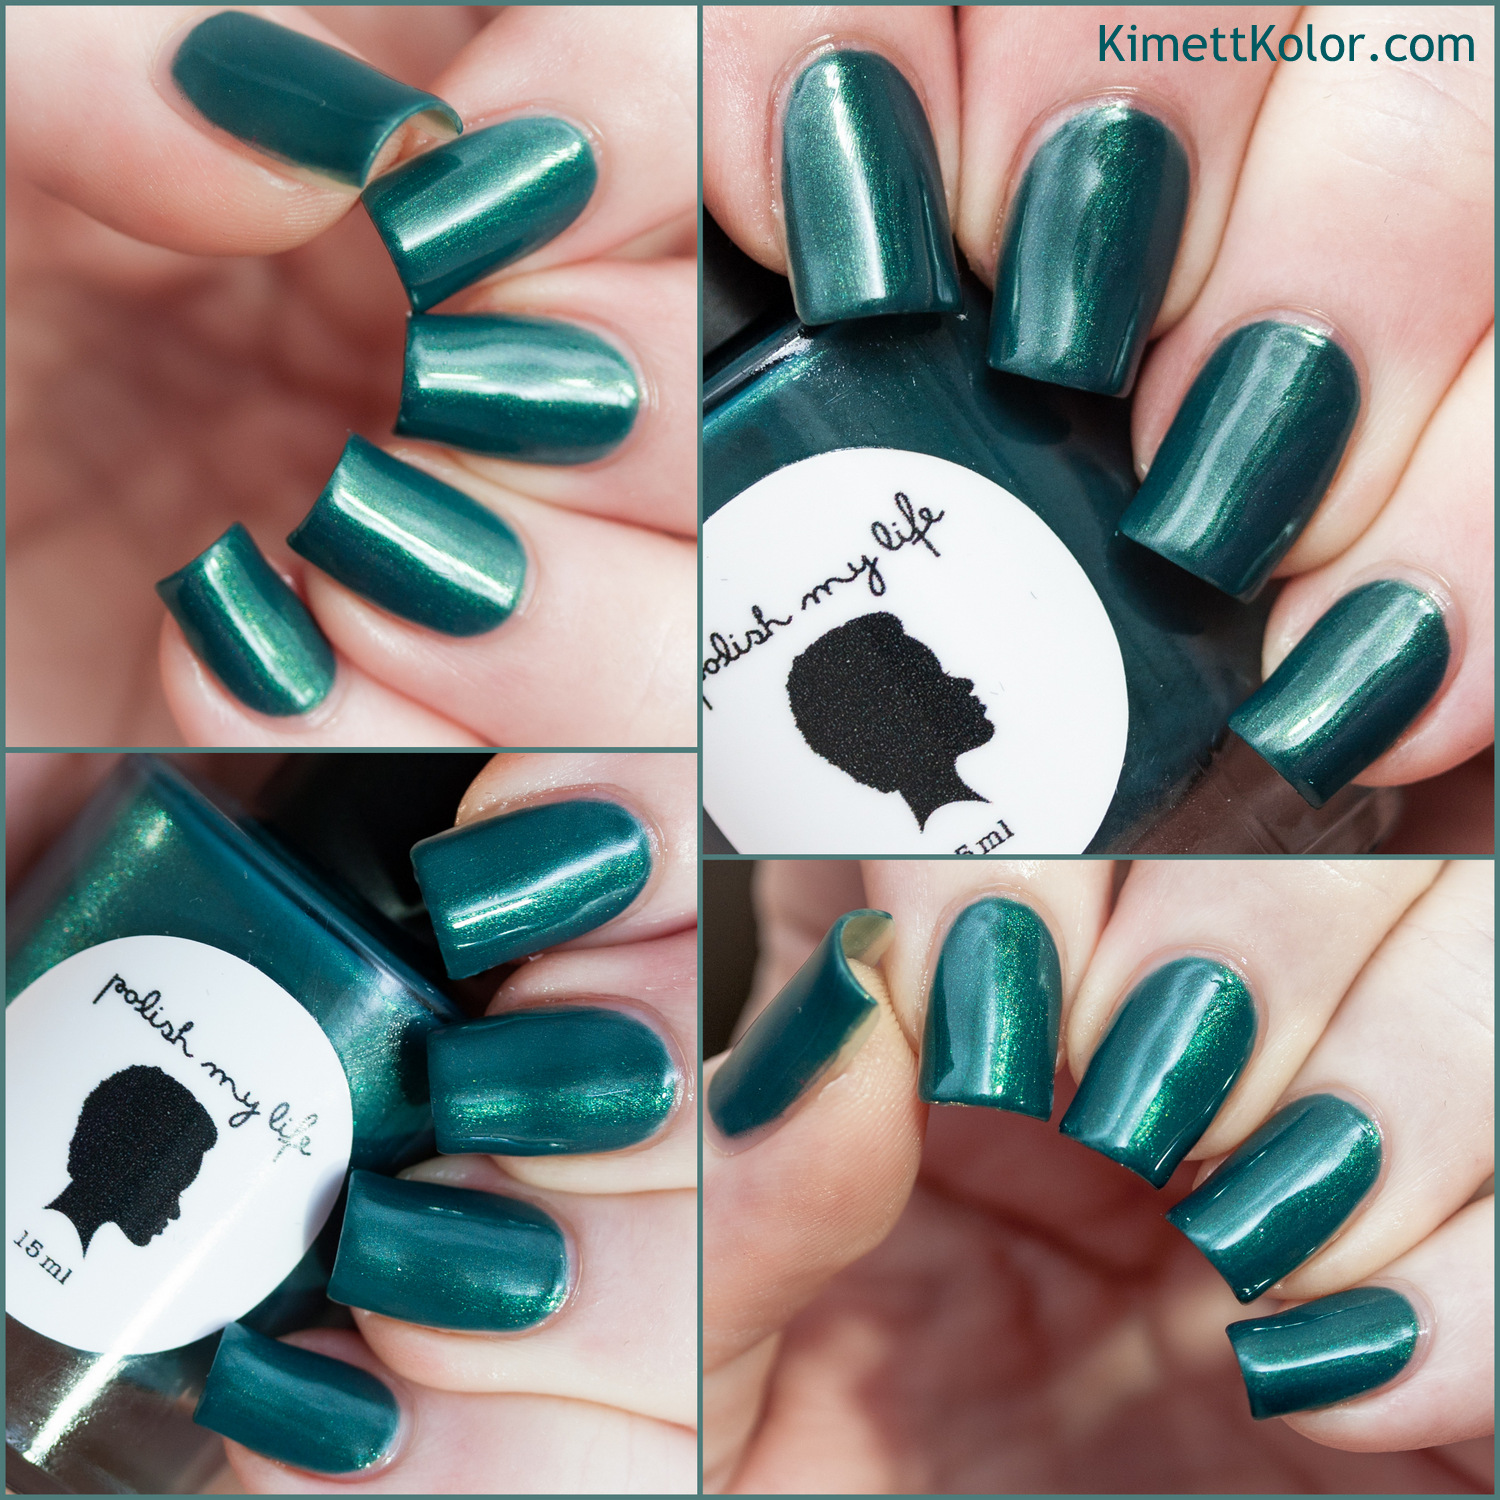 KimettKolor Swatch Morning Dew Polish My Life